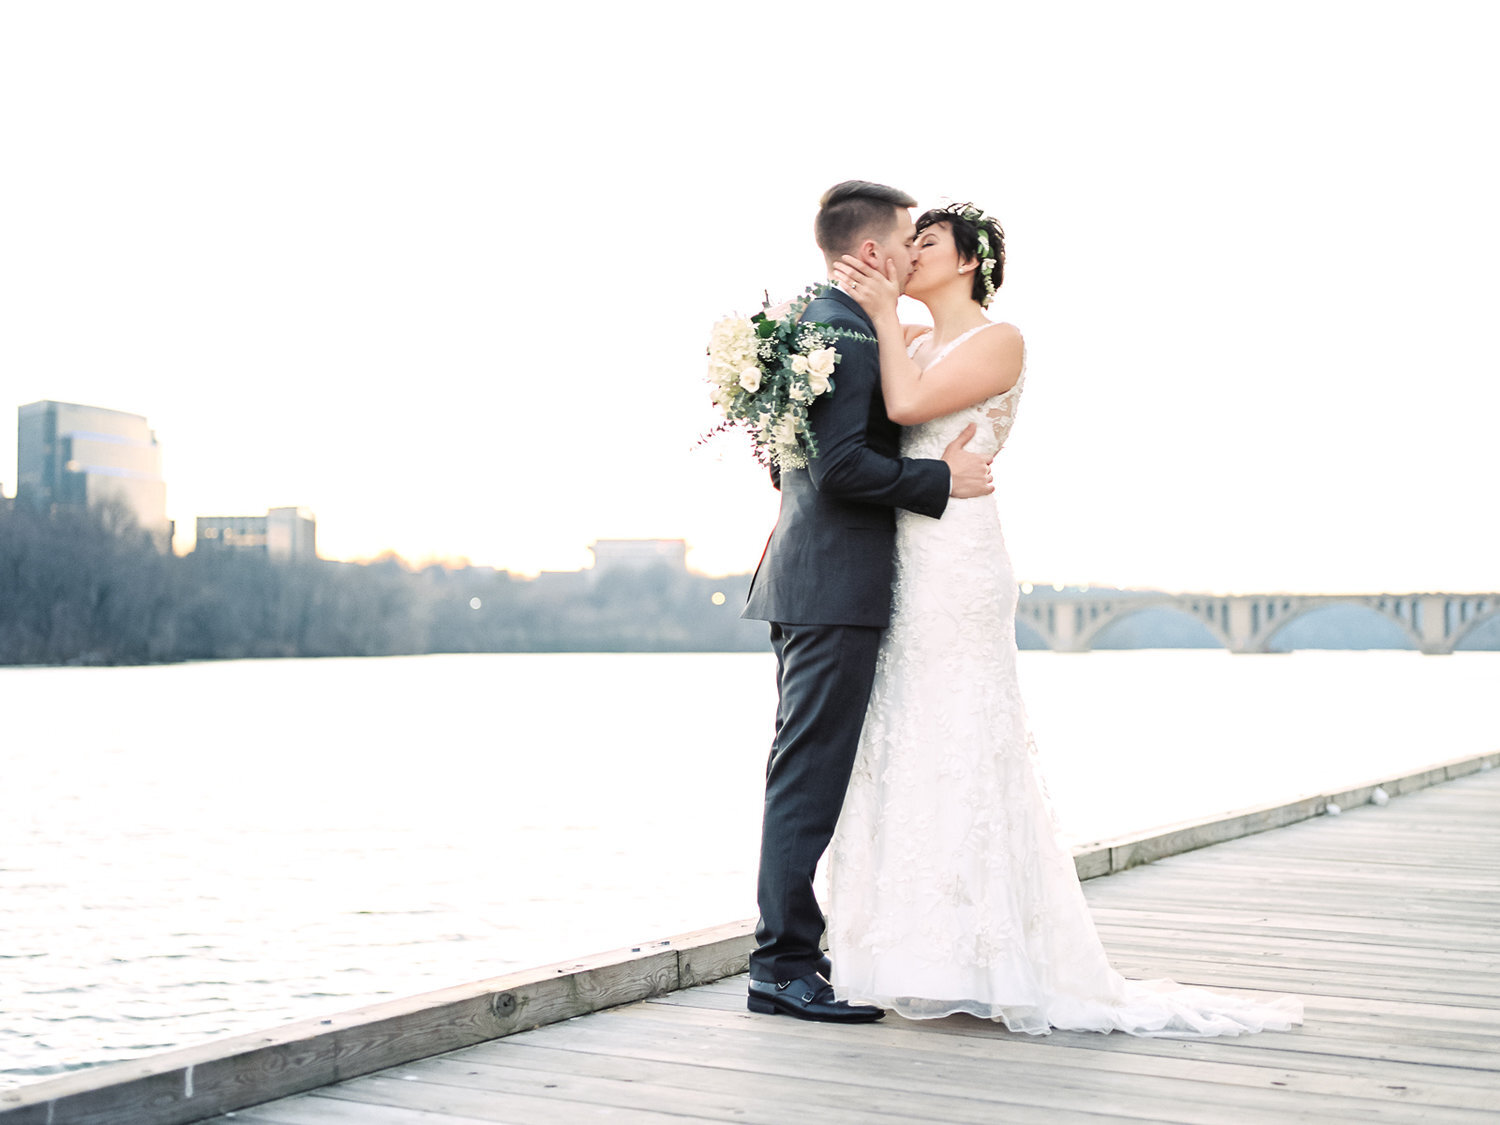 How+to+Choose+Your+Wedding+Photographer+by+Cleveland+Wedding+Photographer+Matt+Erickson+Photography.jpg